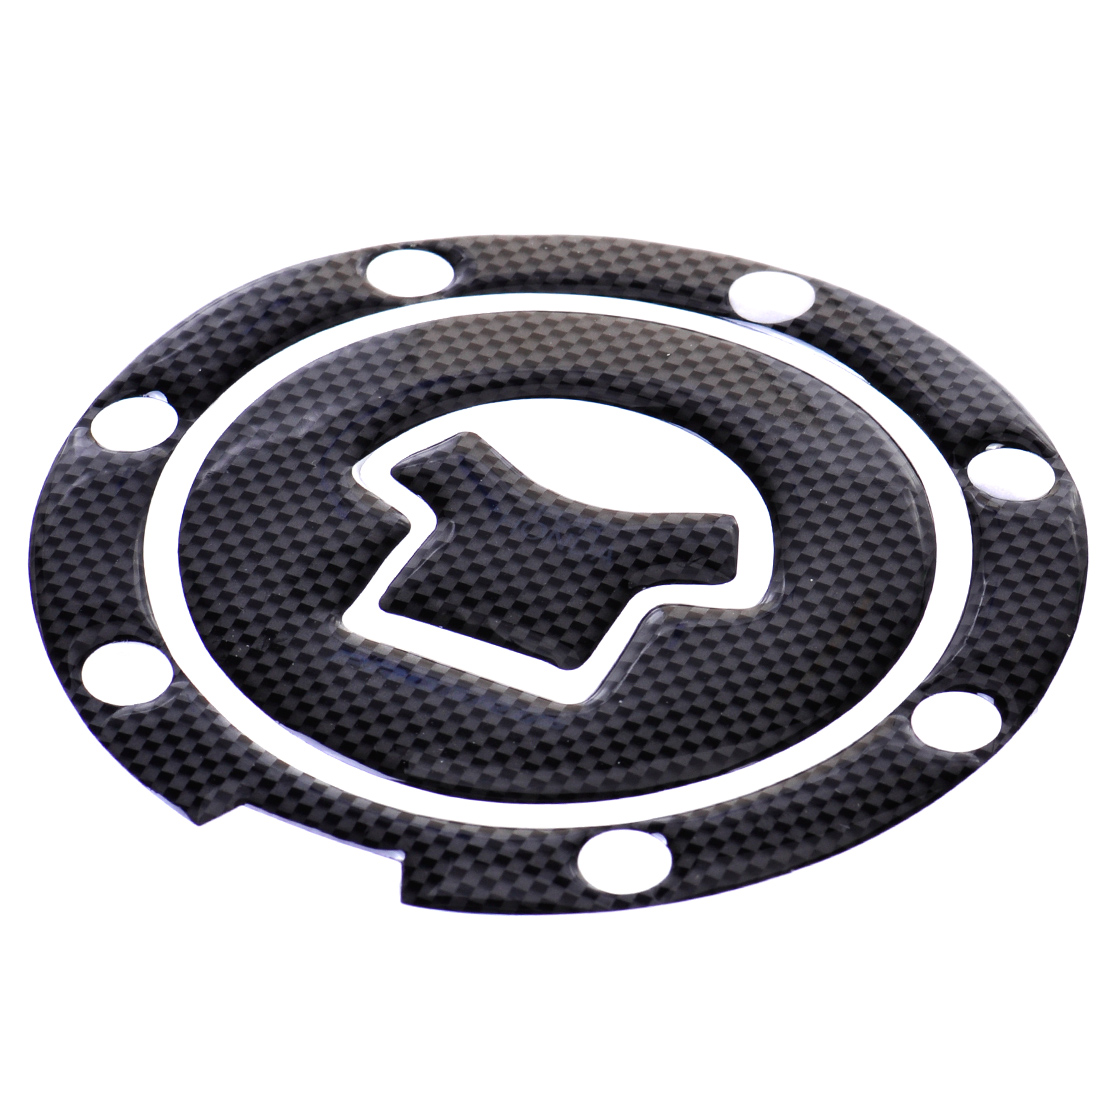 Motorcycle Fuel Tank Cap Cover Decal Sticker for HONDA CBR600RR 2003-2011 04 05